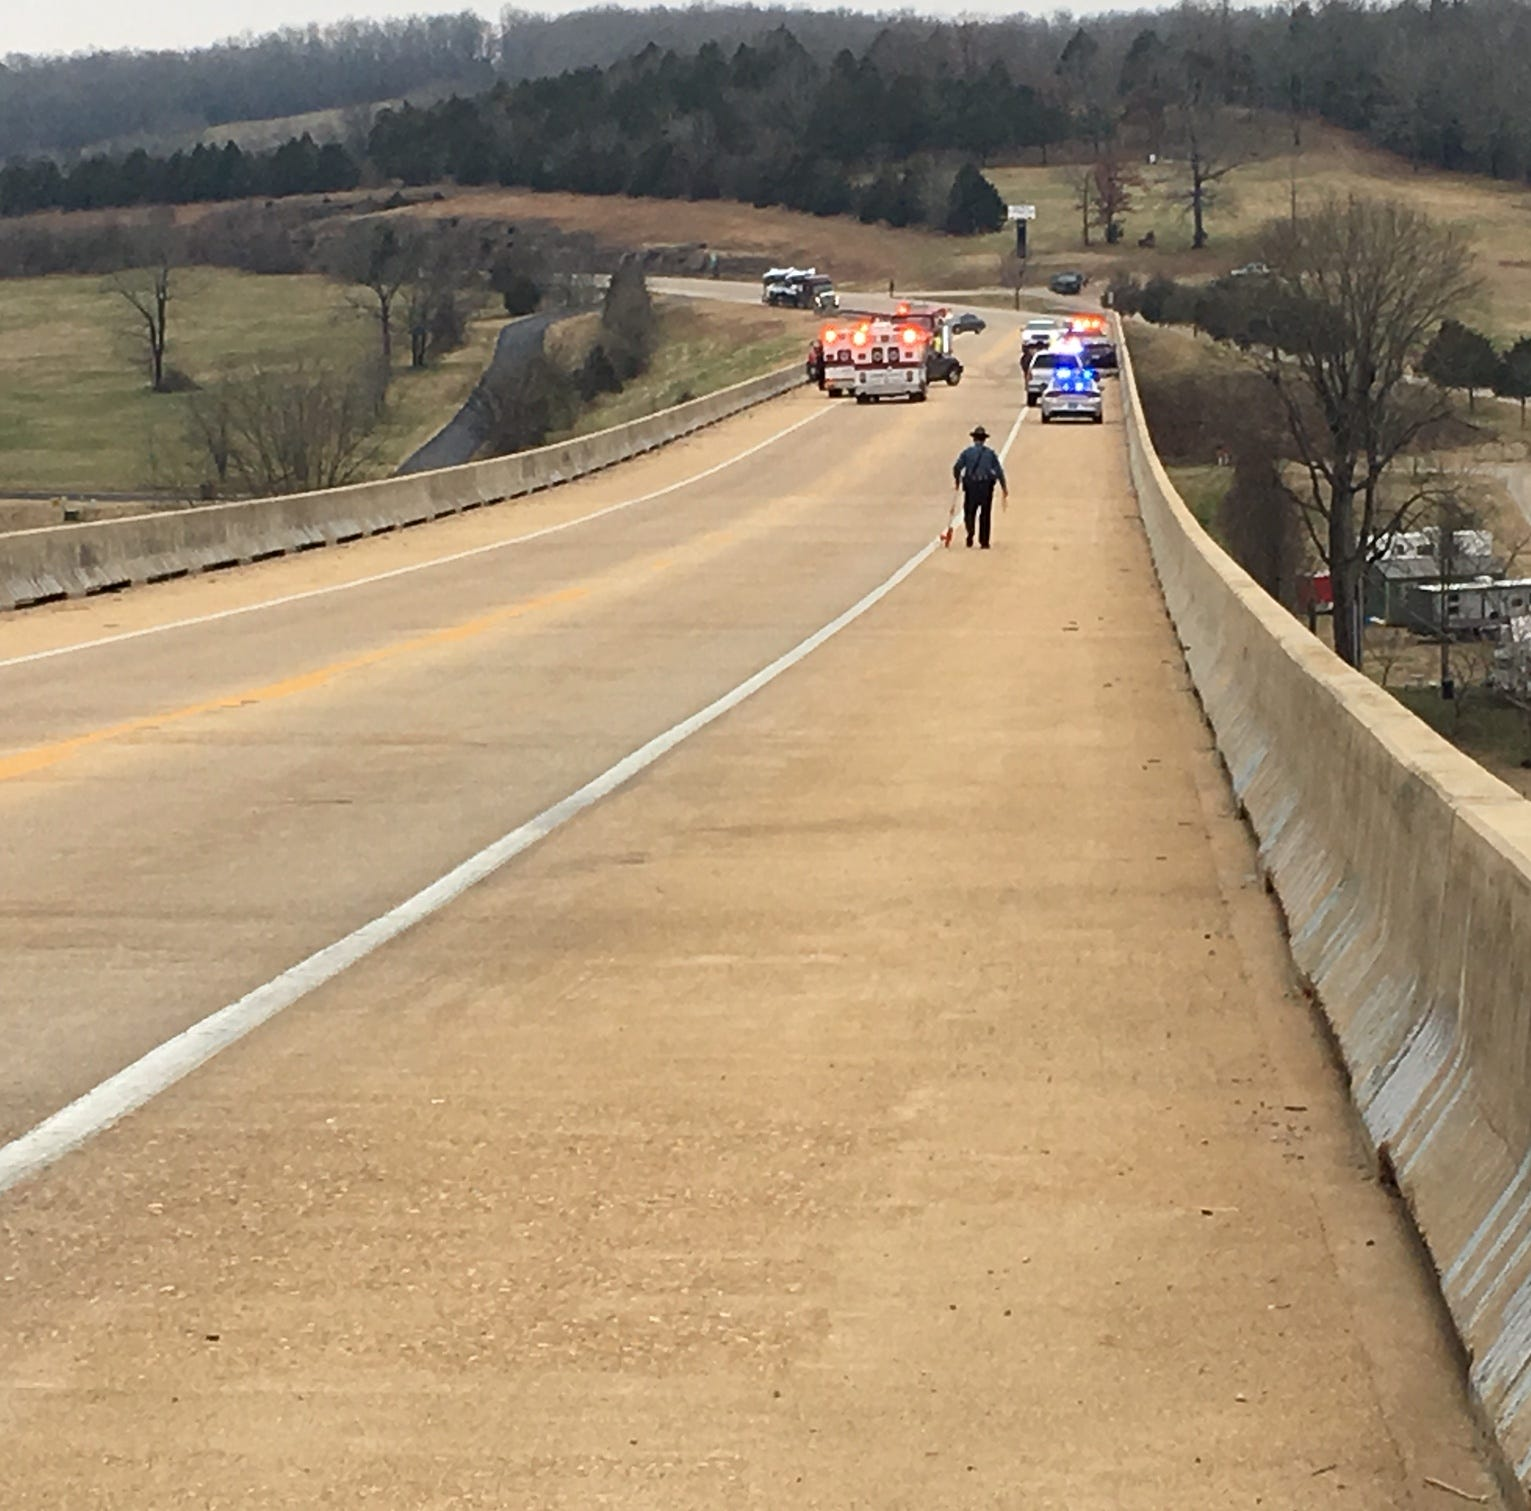 Multi-vehicle crash occurs on new Cotter bridge